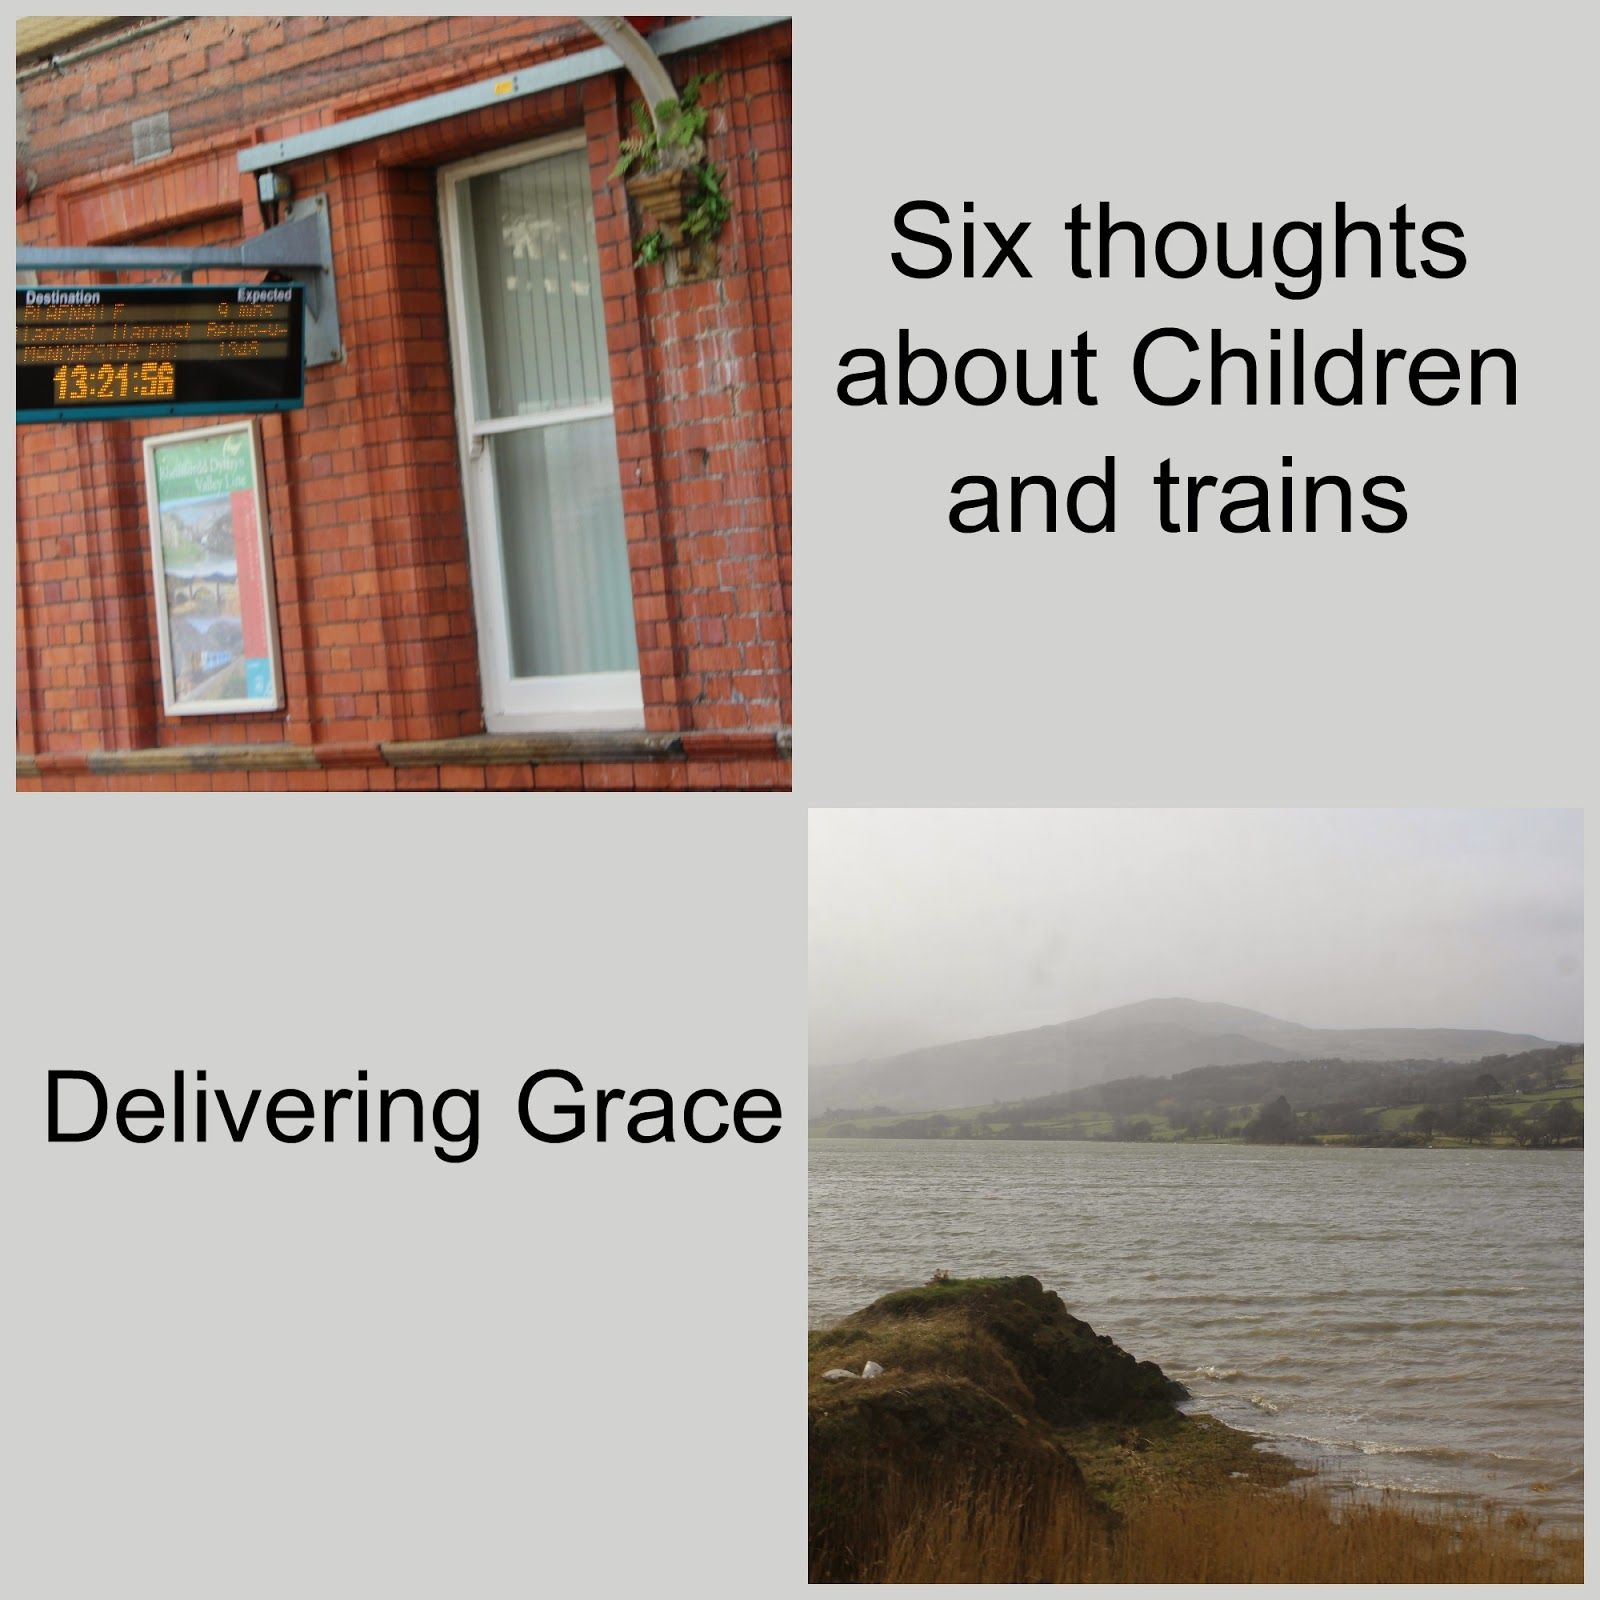 delivering grace: Six thoughts about children and trains